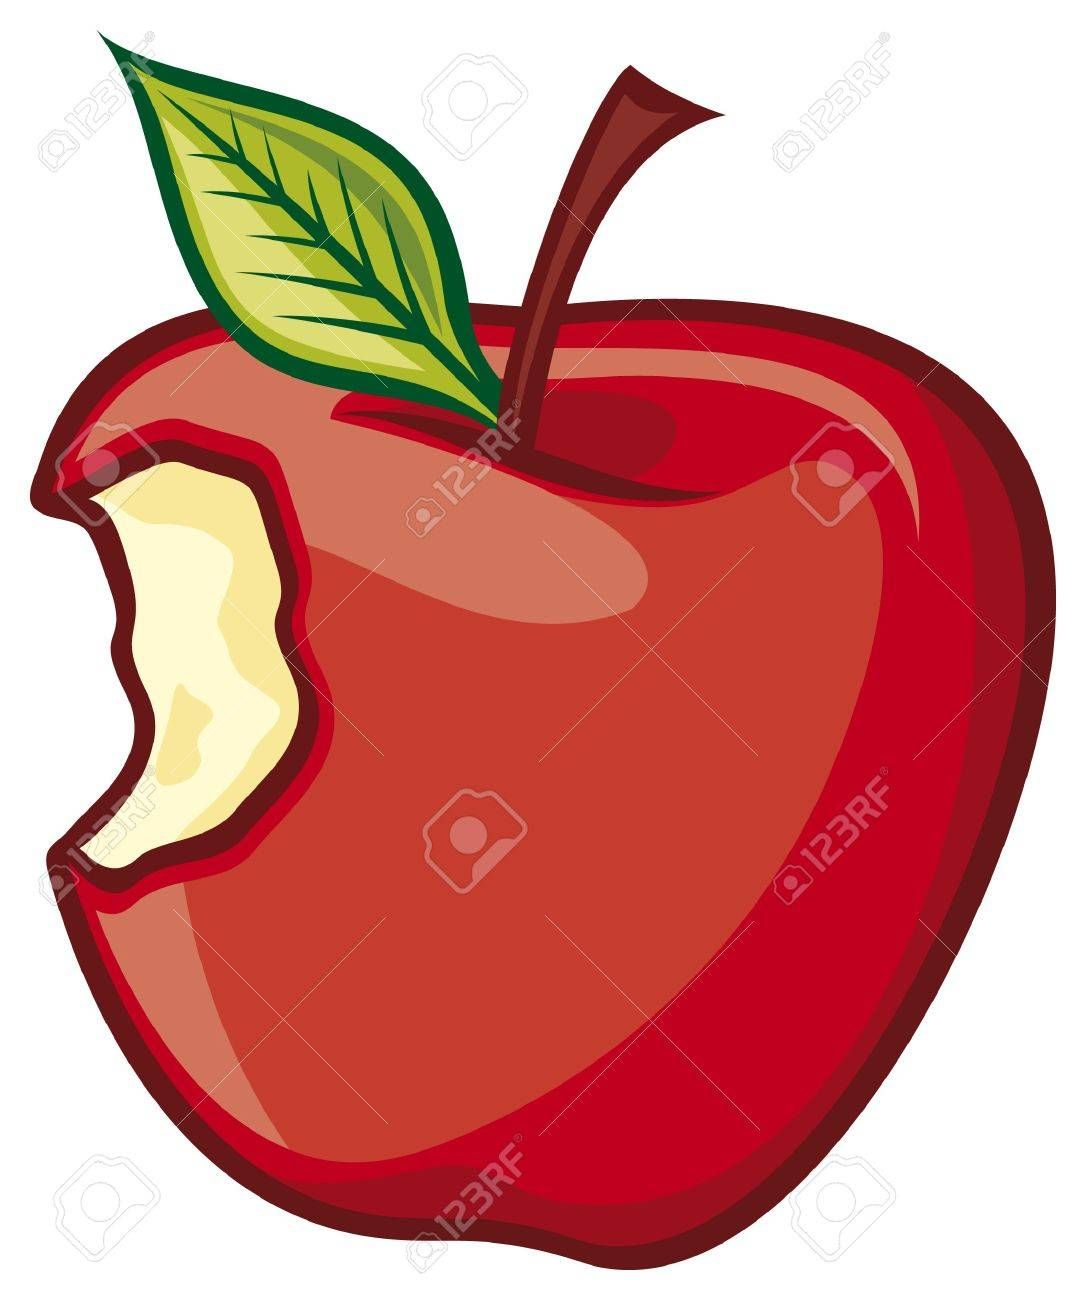 Apple clipart with a bite clipart images gallery for free.